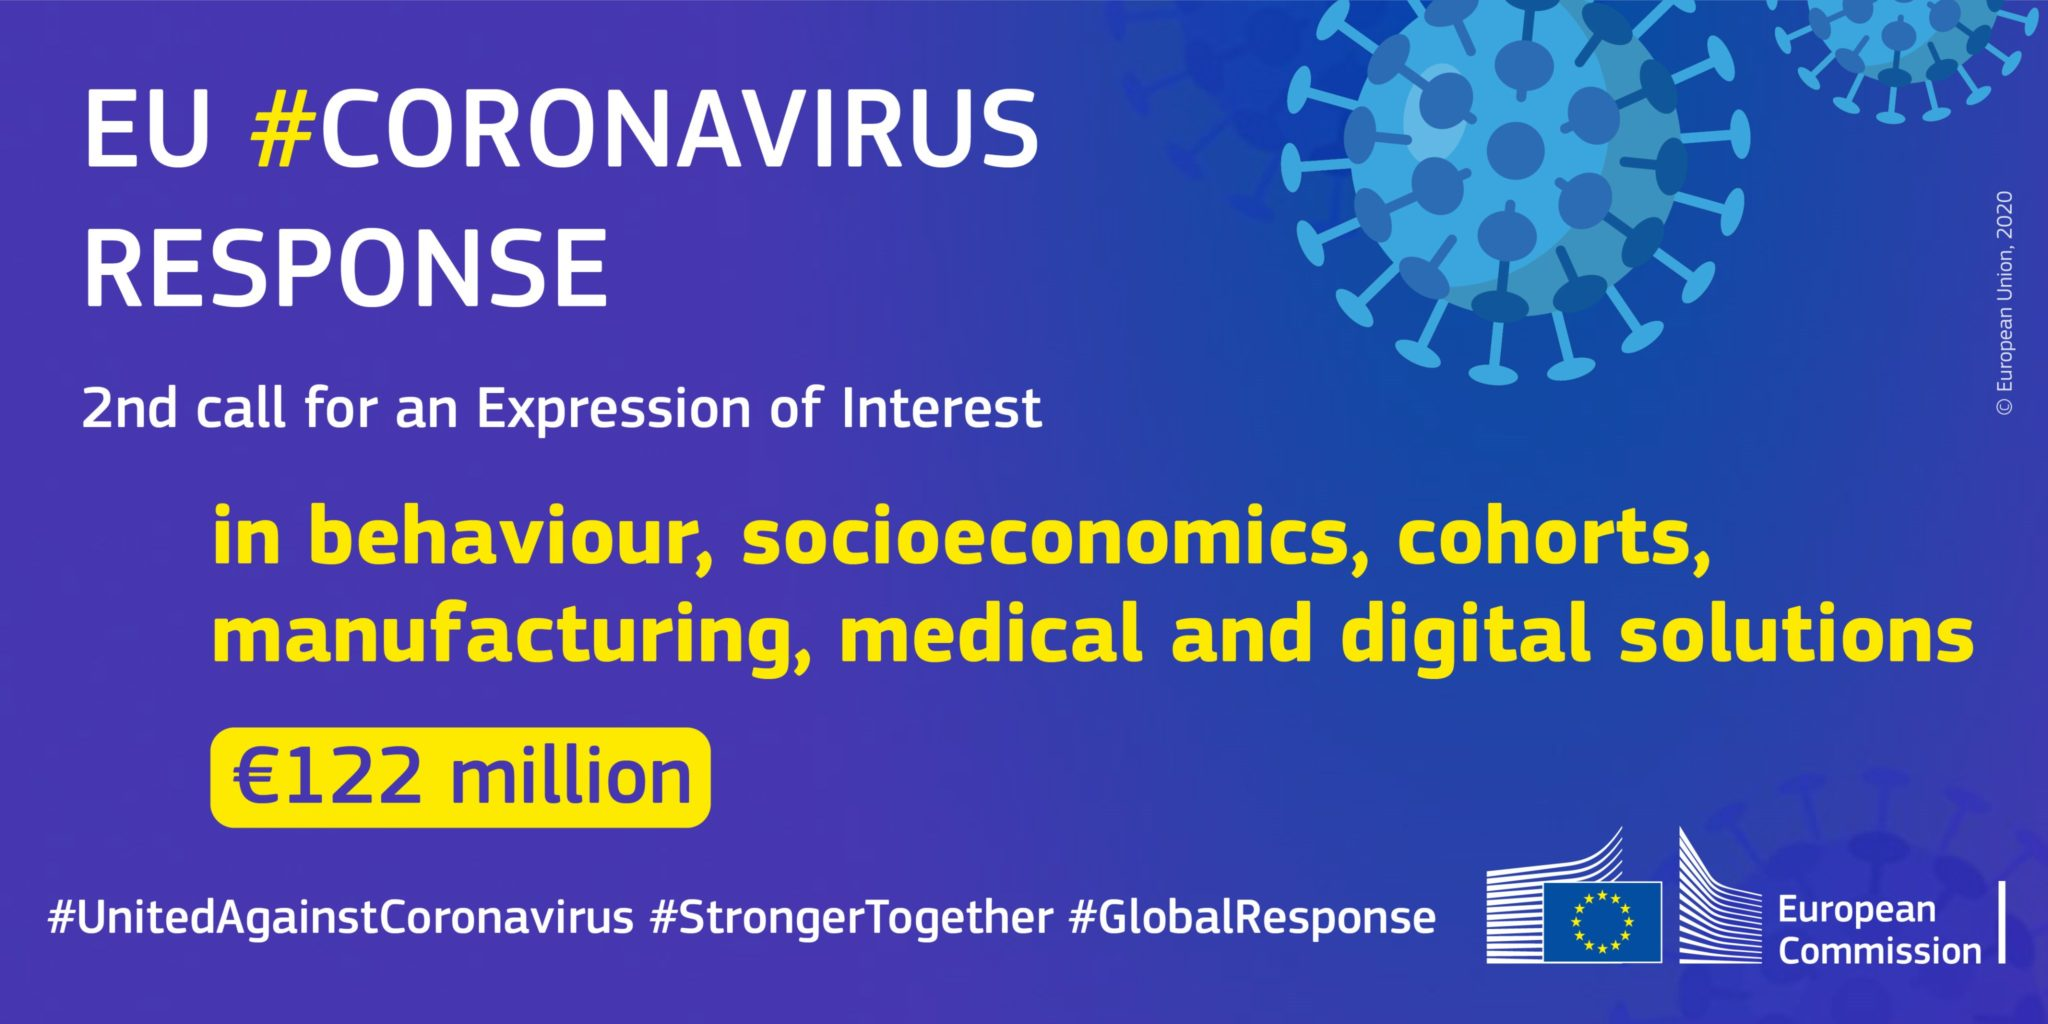 European Commission 2nd call for Expression of Interest Coronavirus COVID19